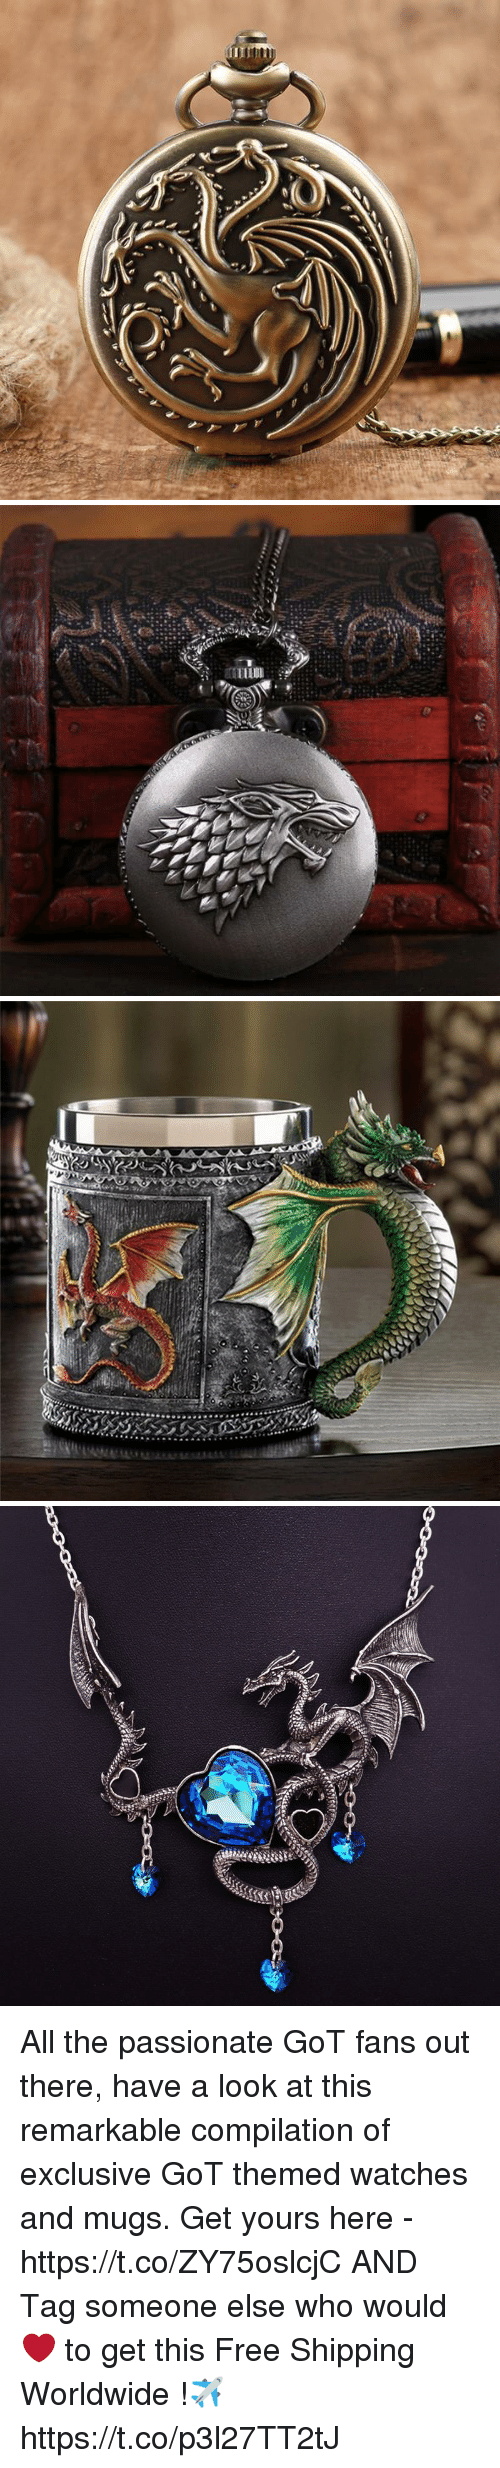 Free, Watches, and Tag Someone: All the passionate GoT fans out there, have a look at this remarkable compilation of exclusive GoT themed watches and mugs.   Get yours here - https://t.co/ZY75oslcjC  AND Tag someone else who would ❤ to get this  Free Shipping Worldwide !✈ https://t.co/p3l27TT2tJ